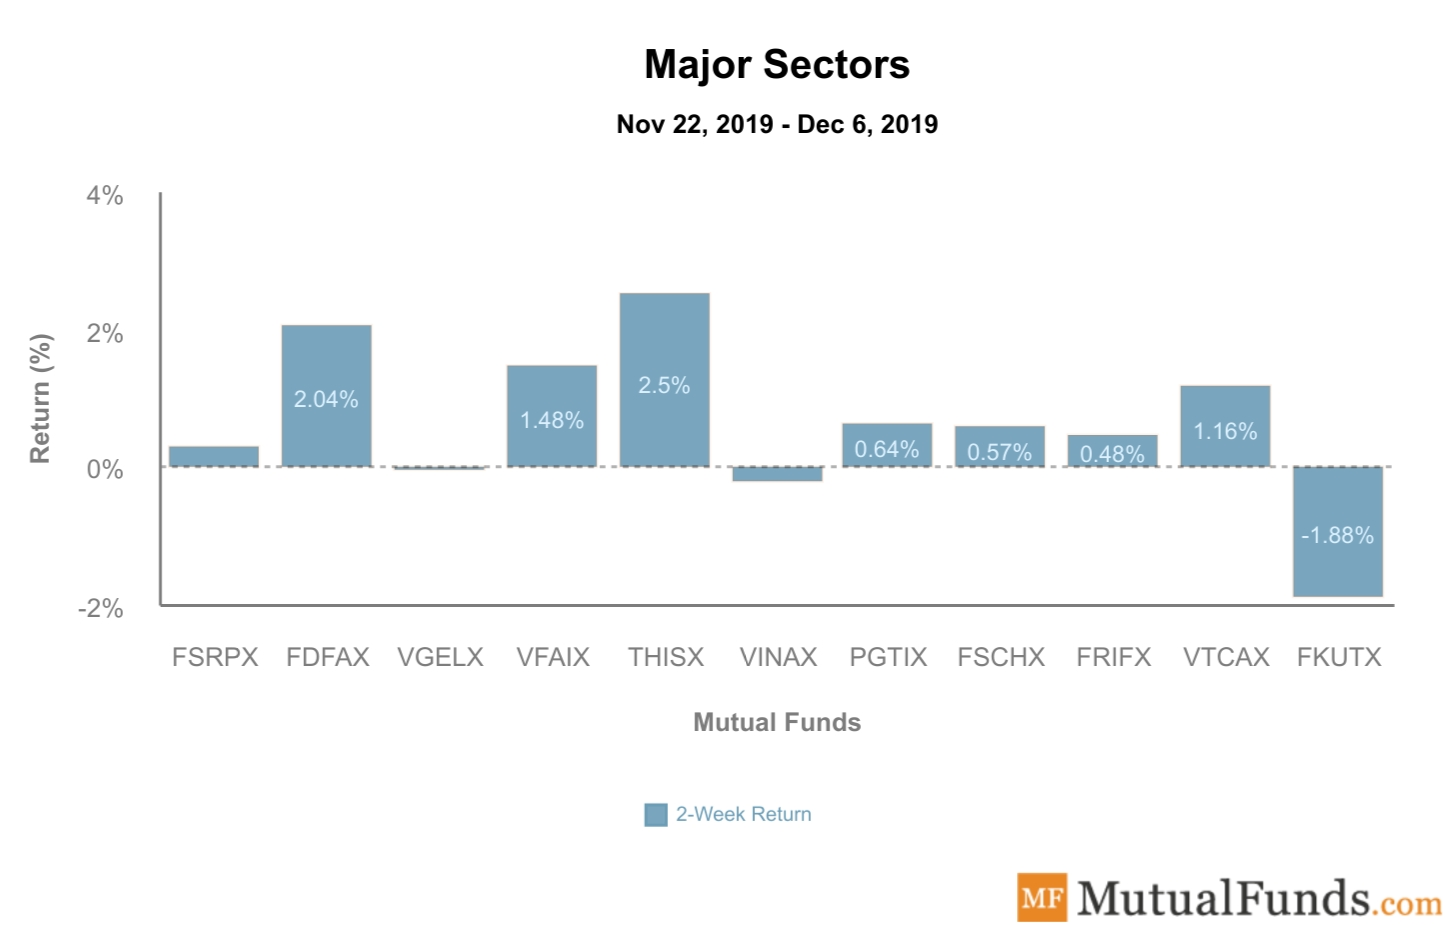 Major Sectors Performance Dec 10, 2019